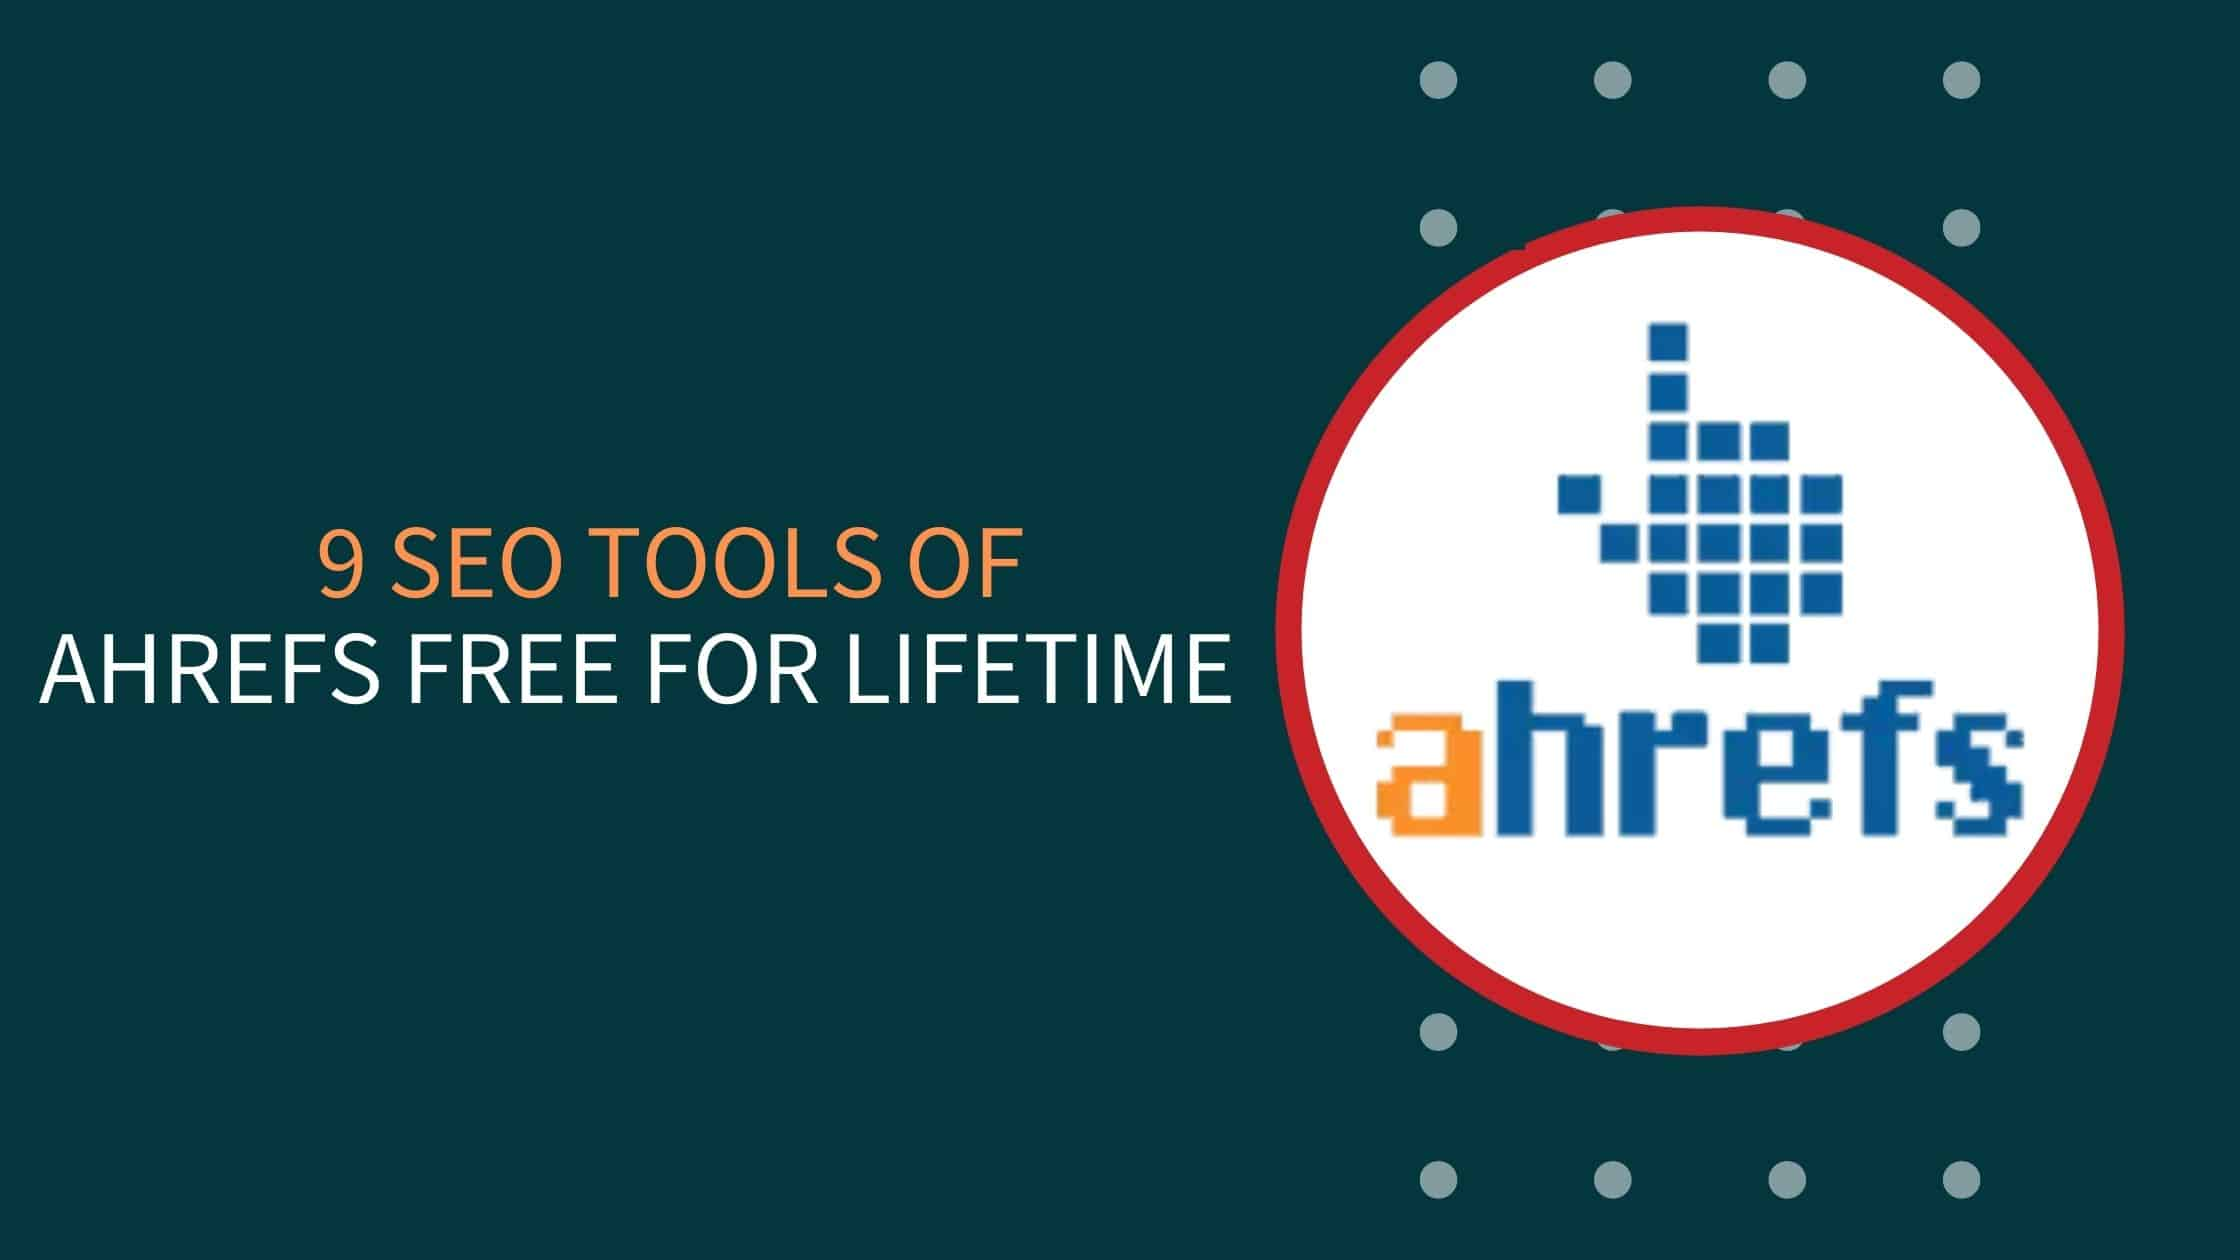 9 SEO Tools Of Ahrefs Free For Lifetime